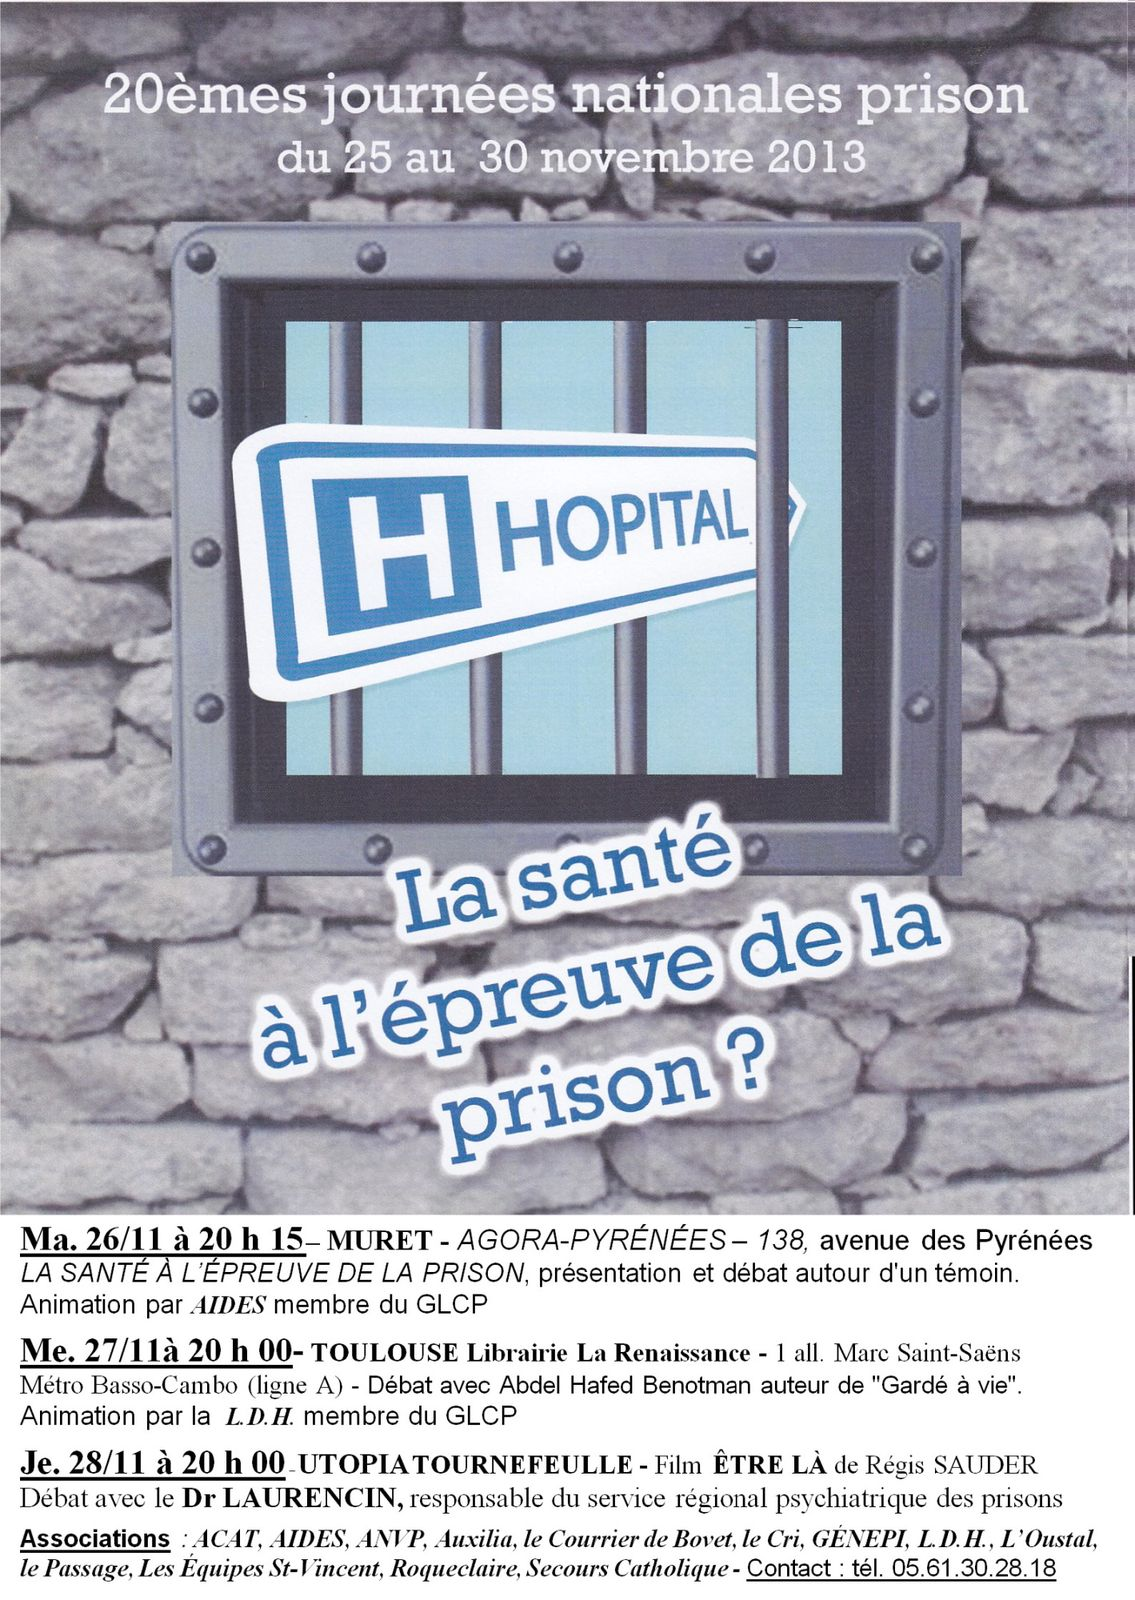 Semaine nationale prison à Toulouse